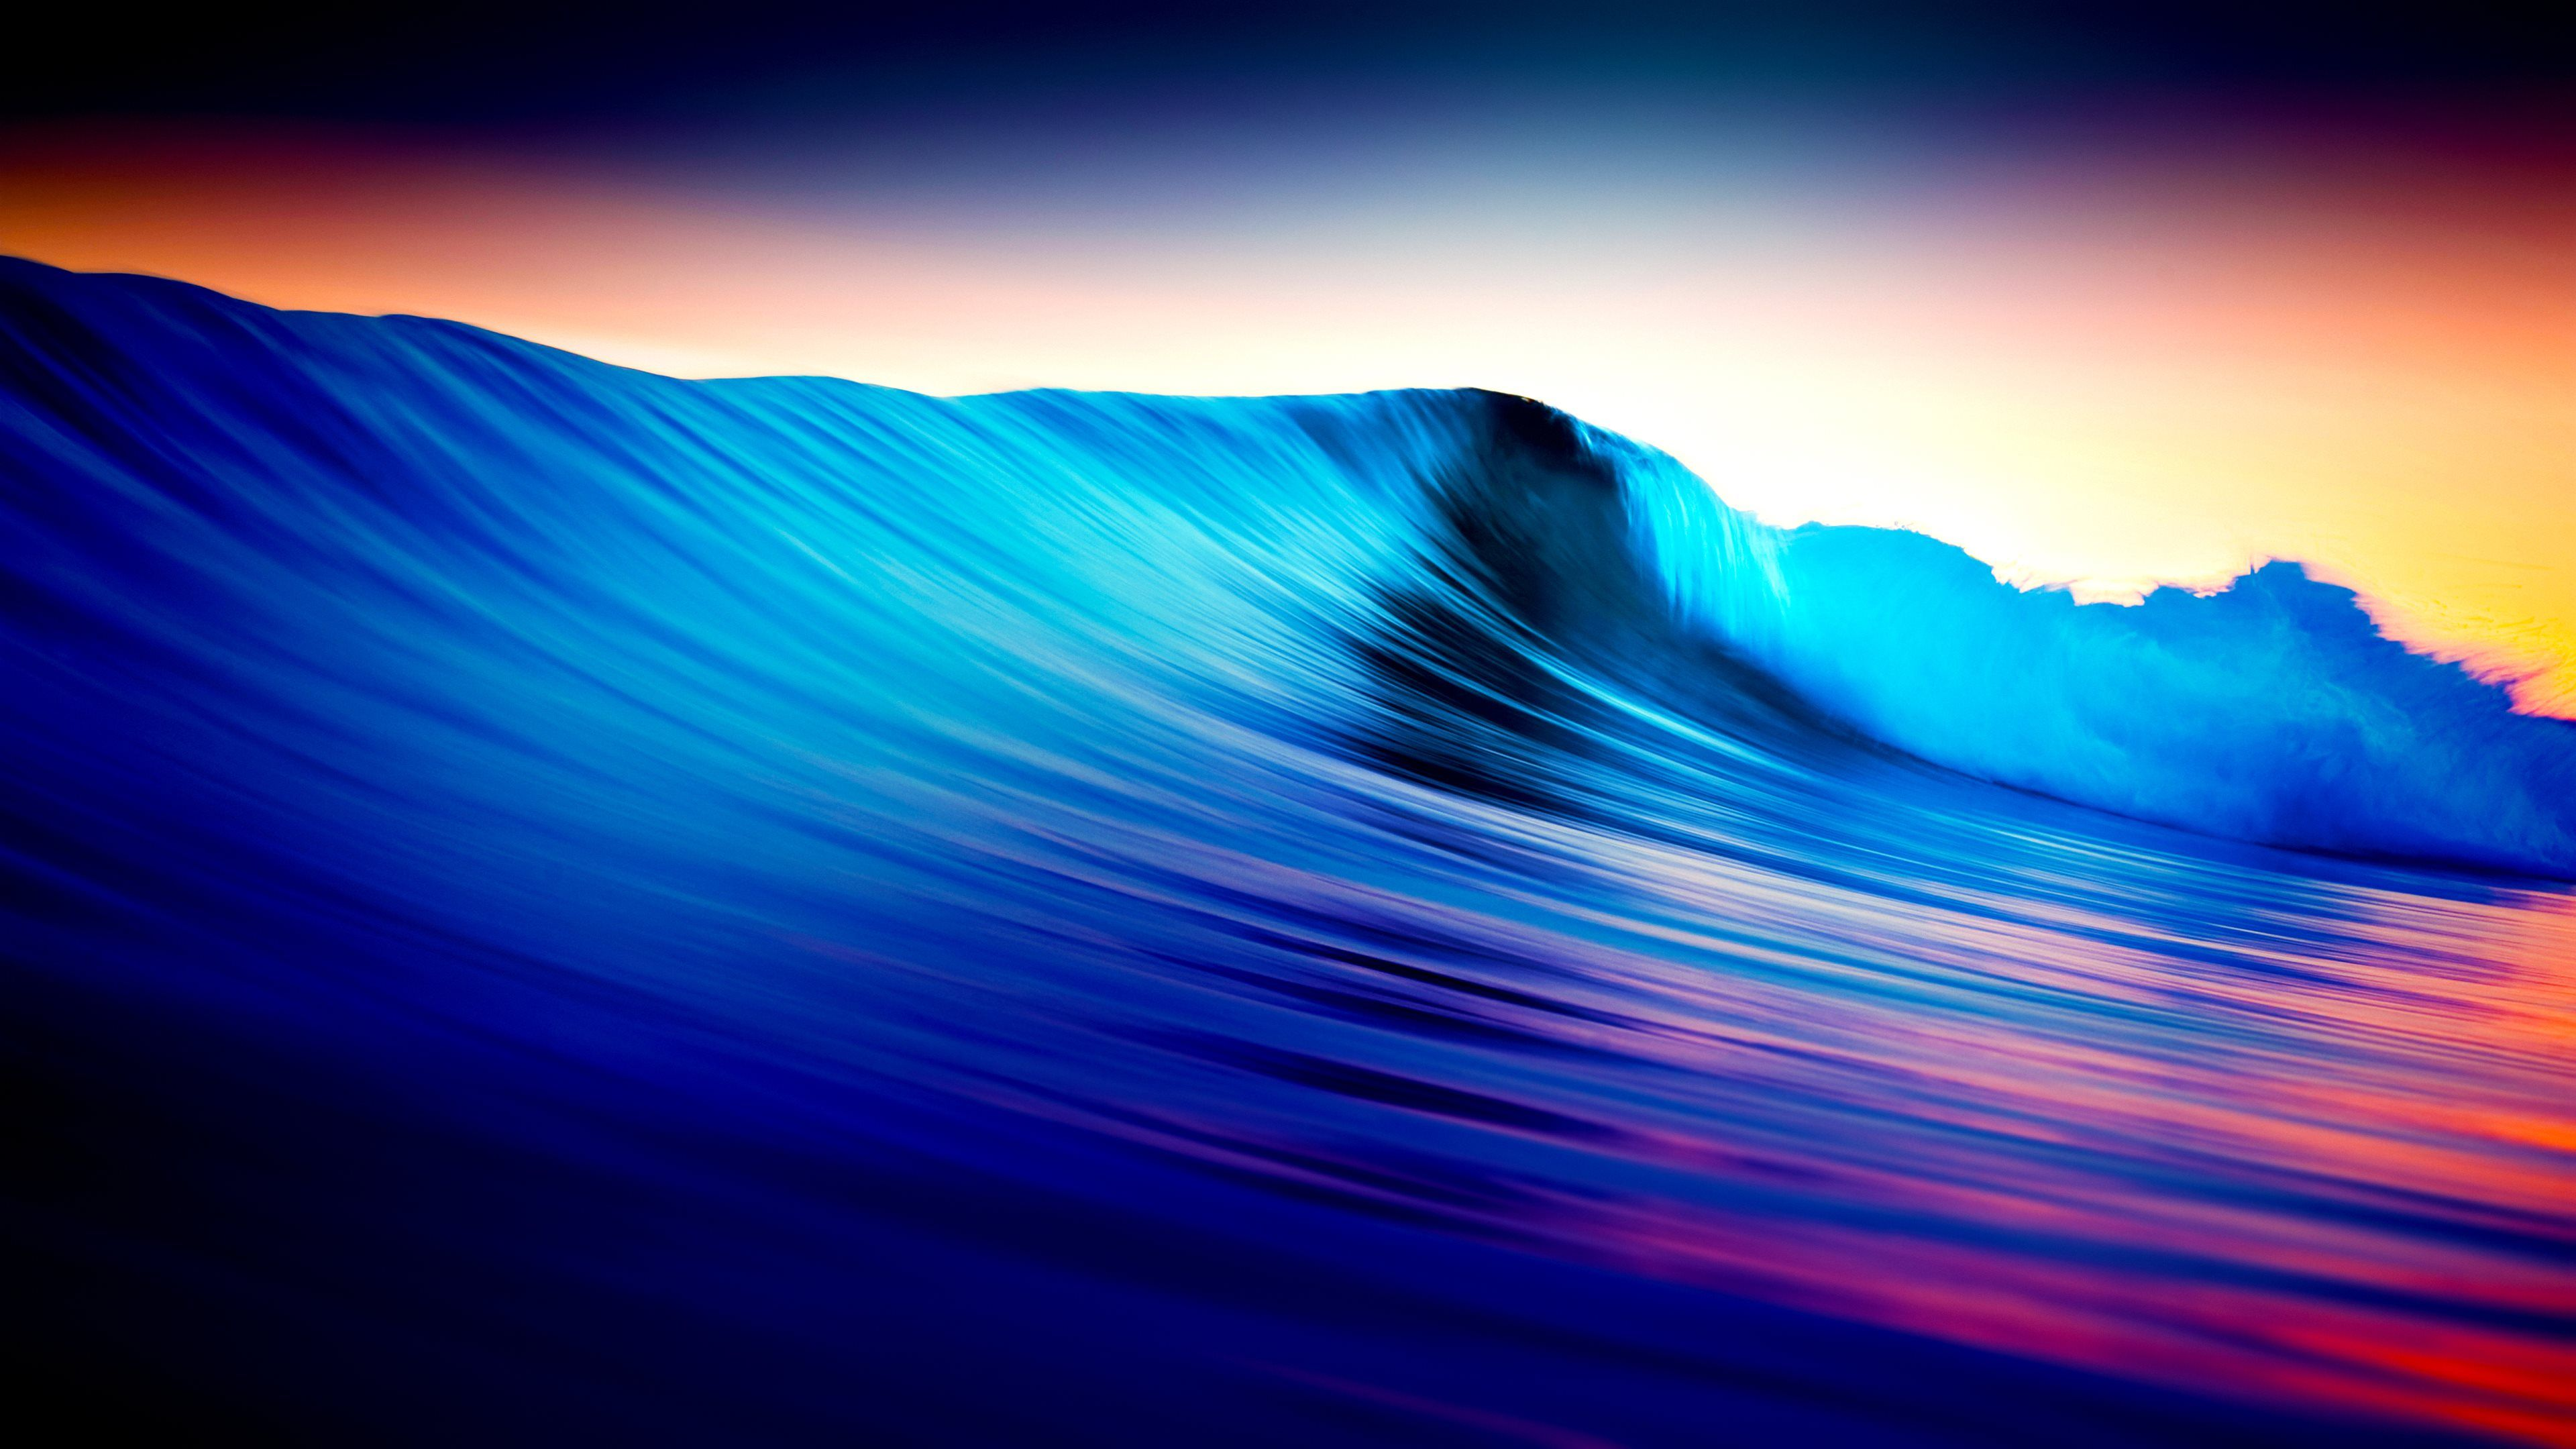 ultra hd wallpapers 4k Waves wallpaper, Uhd wallpaper